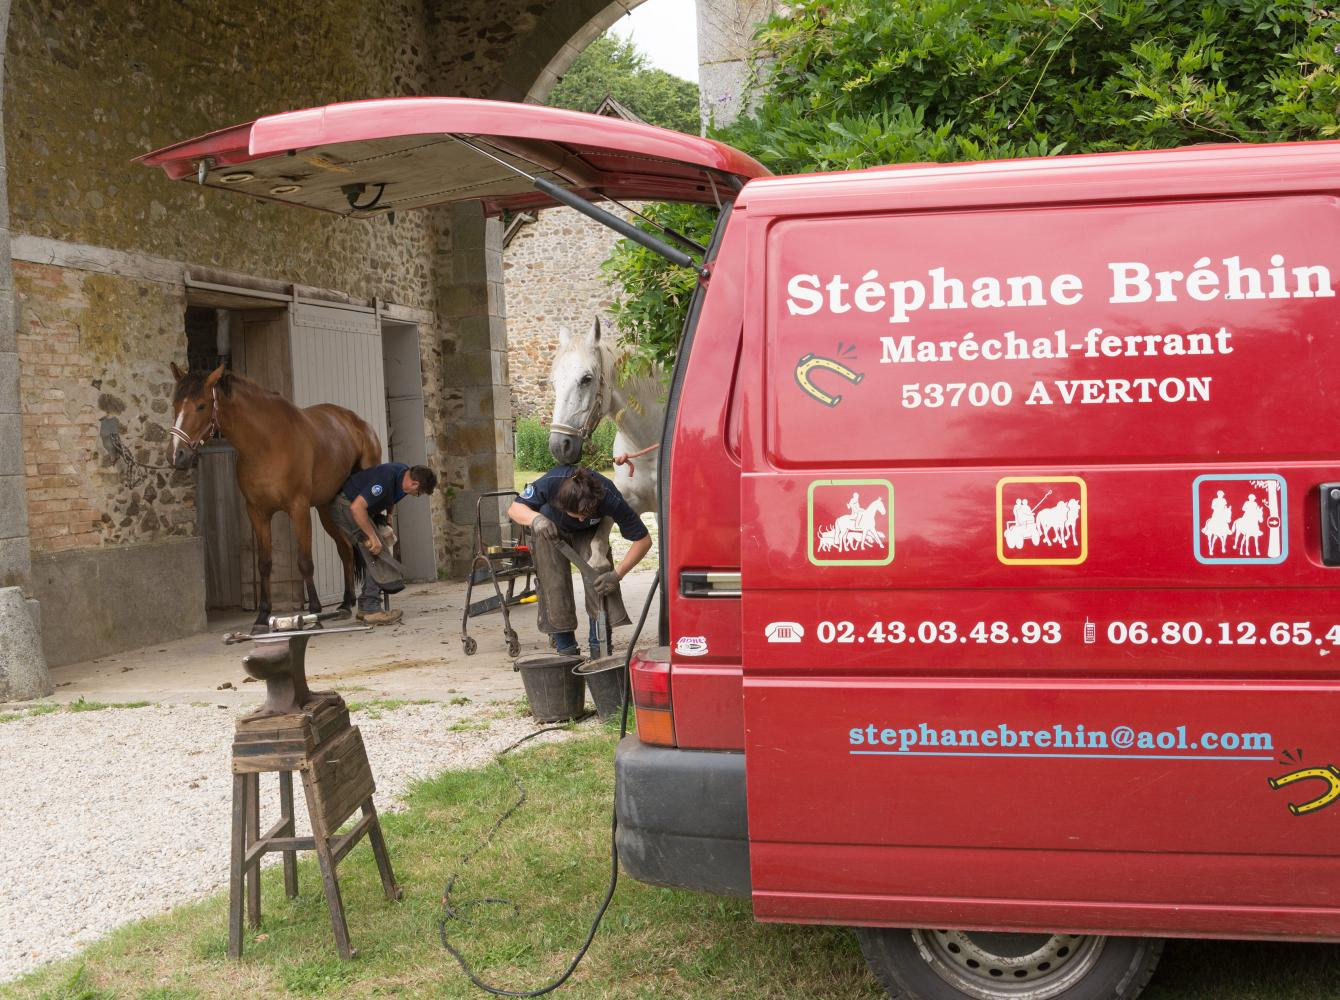 The French farrier Stéphane Brehin at work